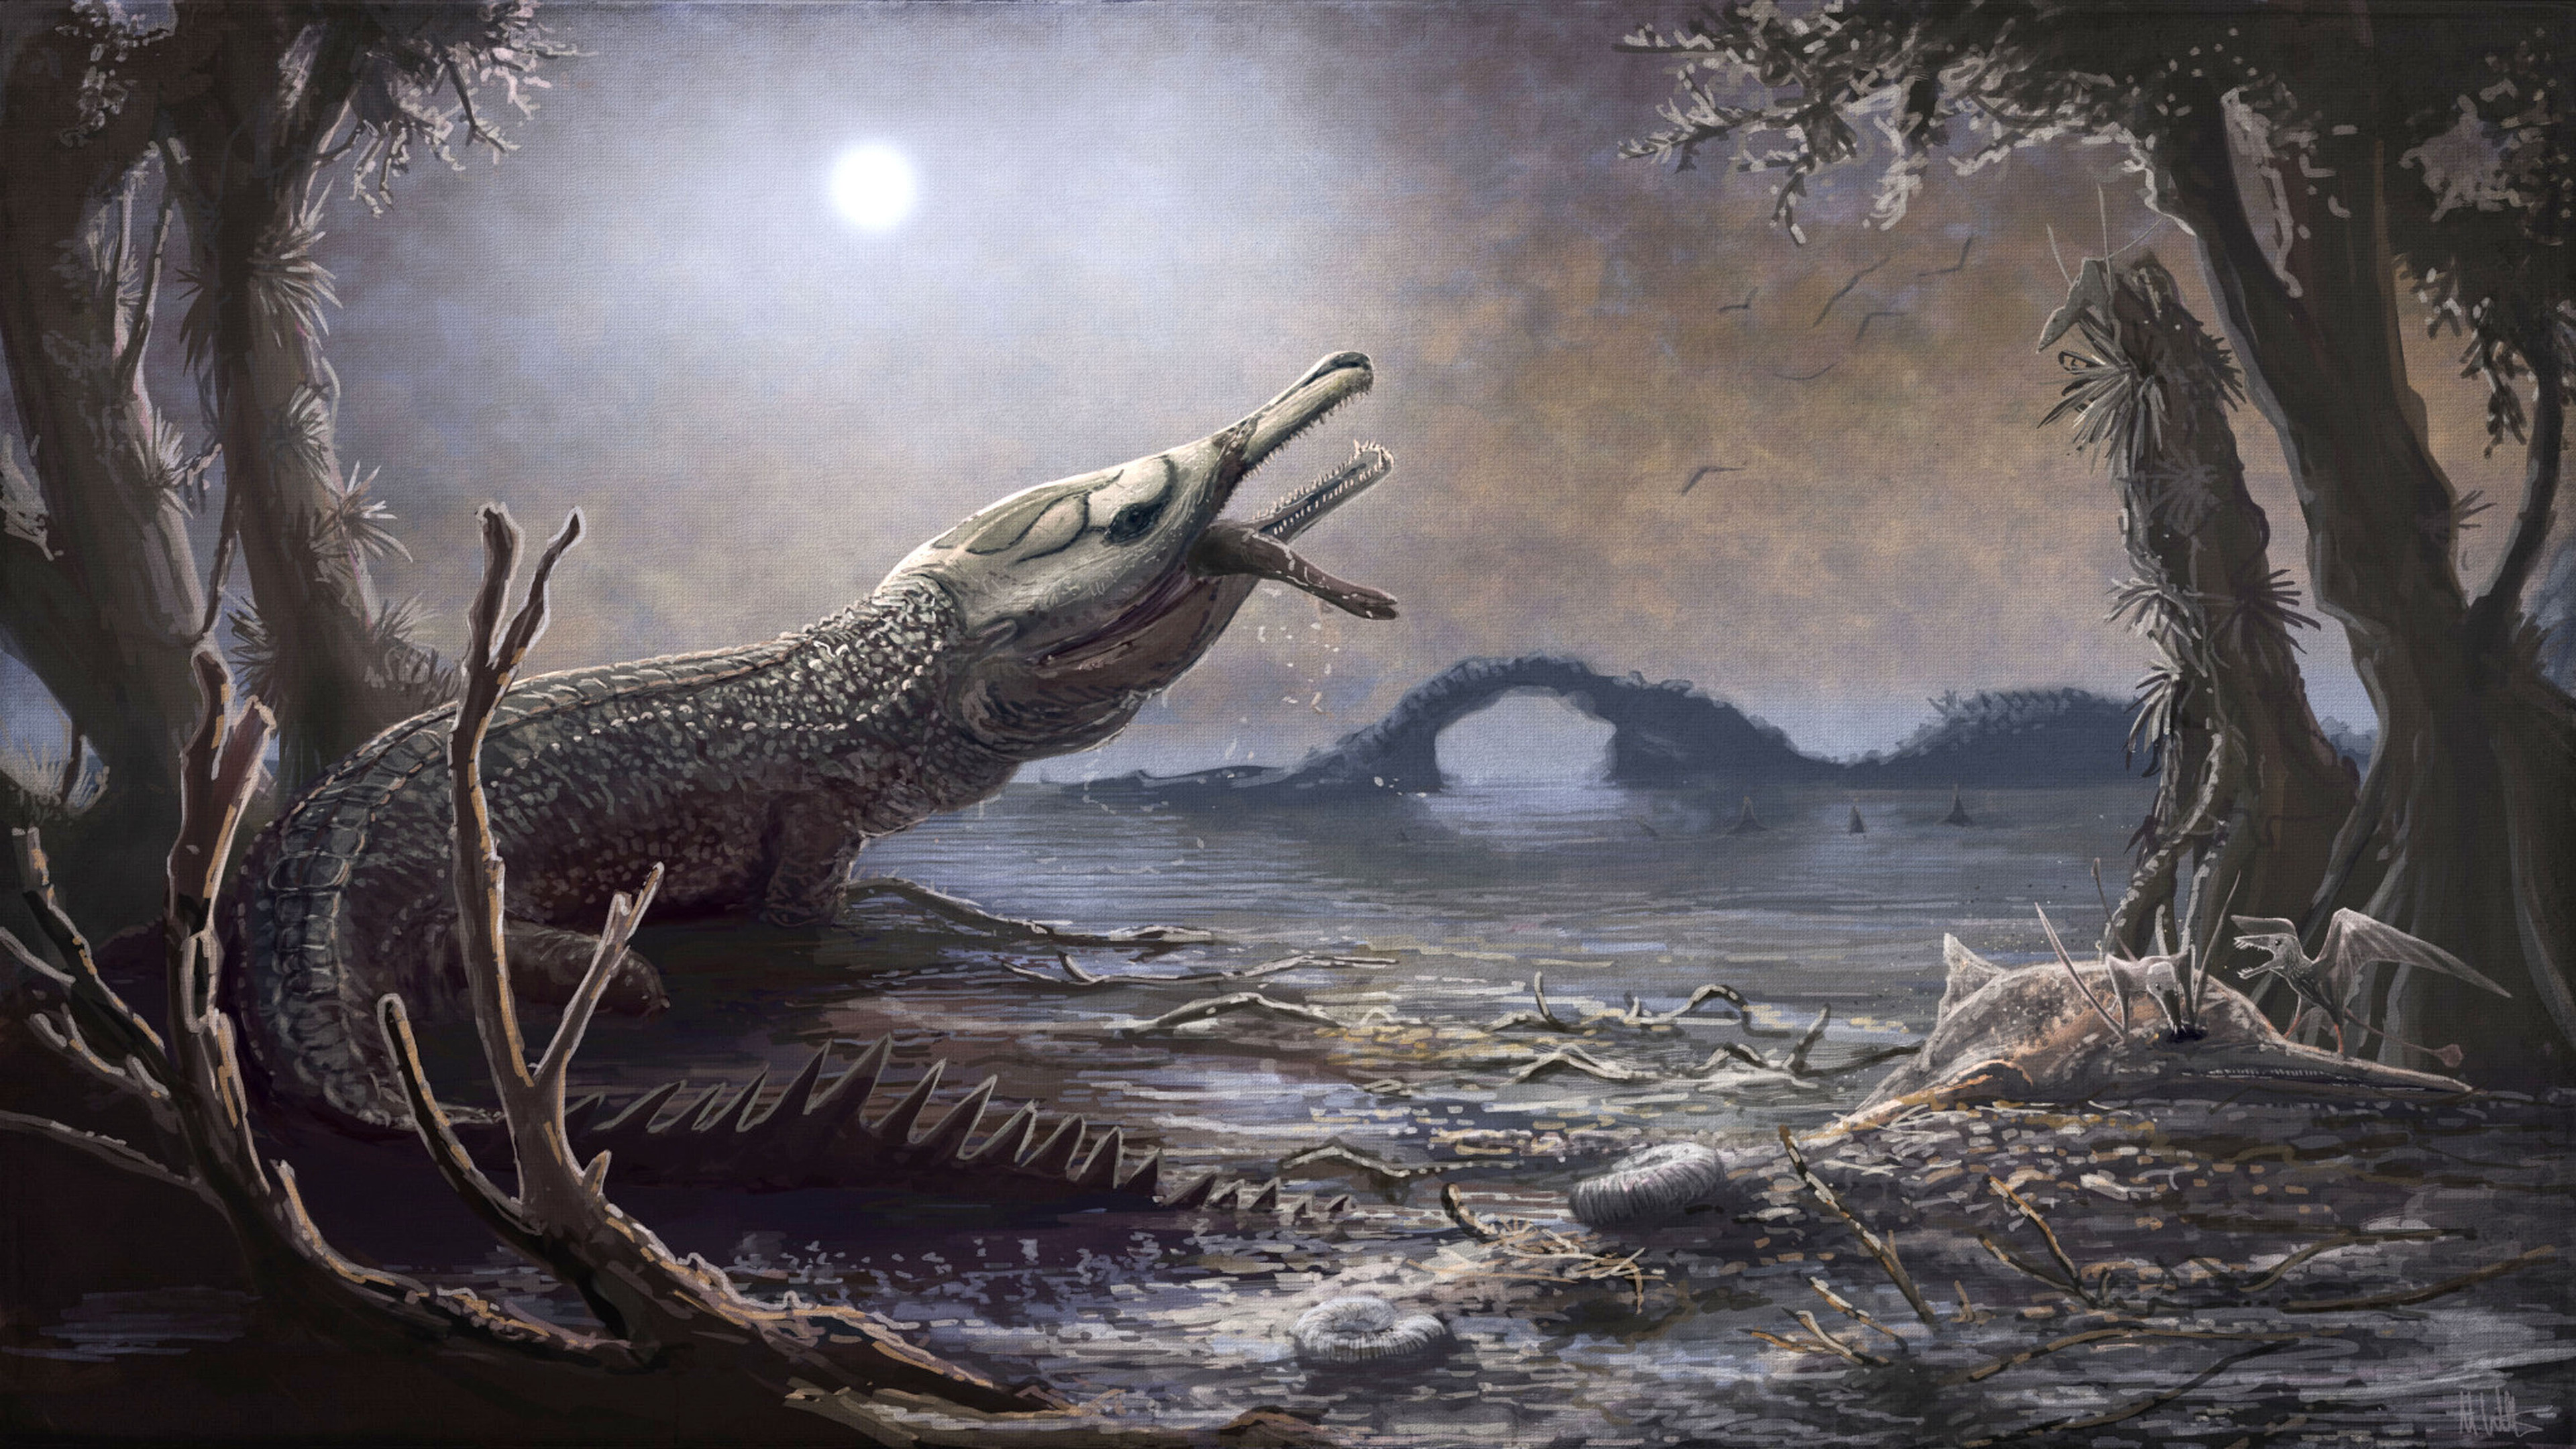 New species Jurassic croc named after Motorhead's Lemmy